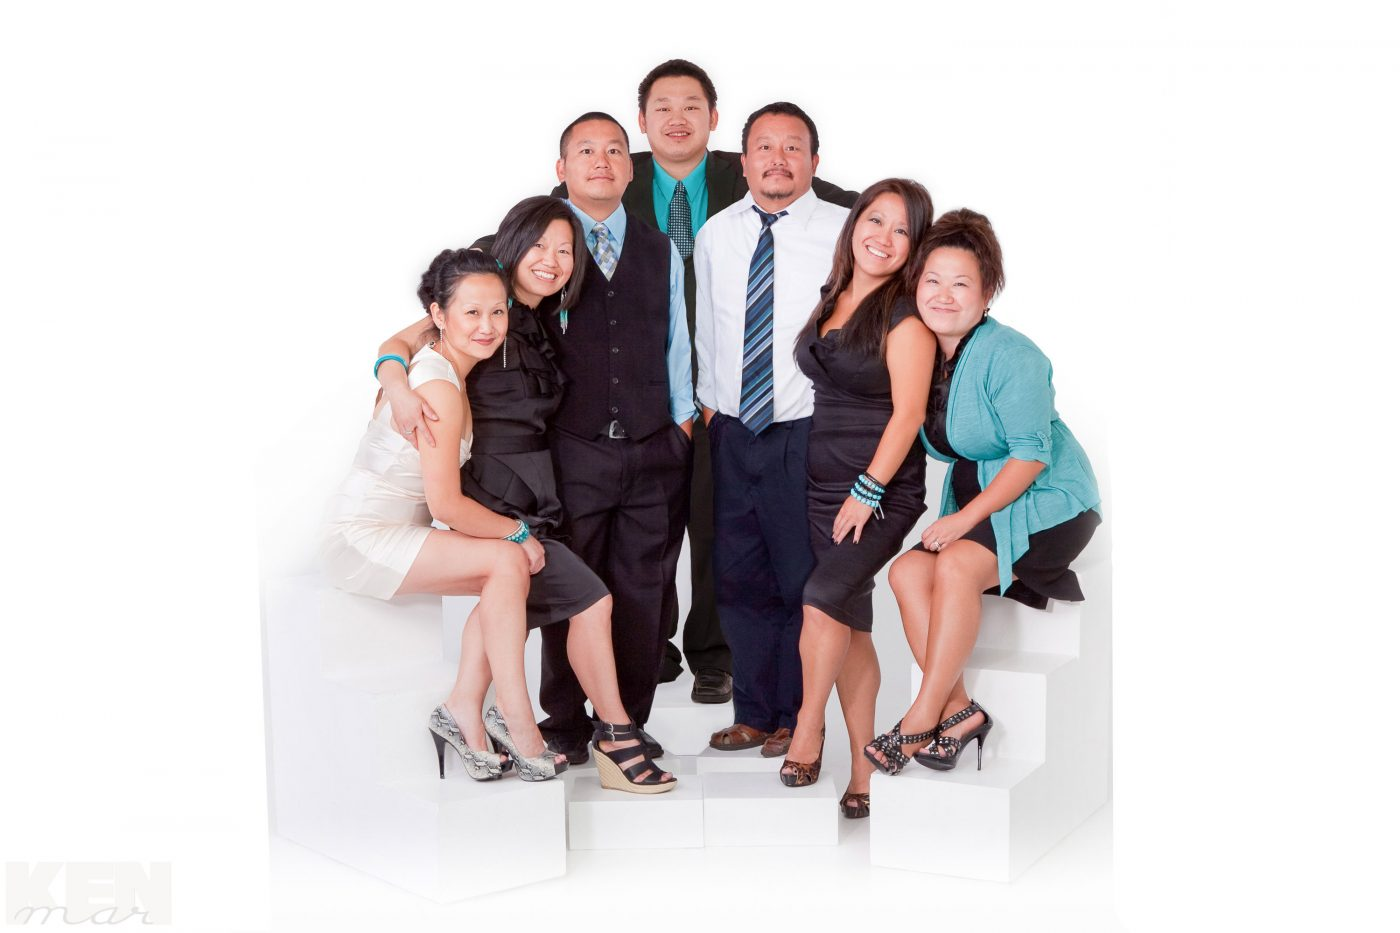 Semi-formal family group